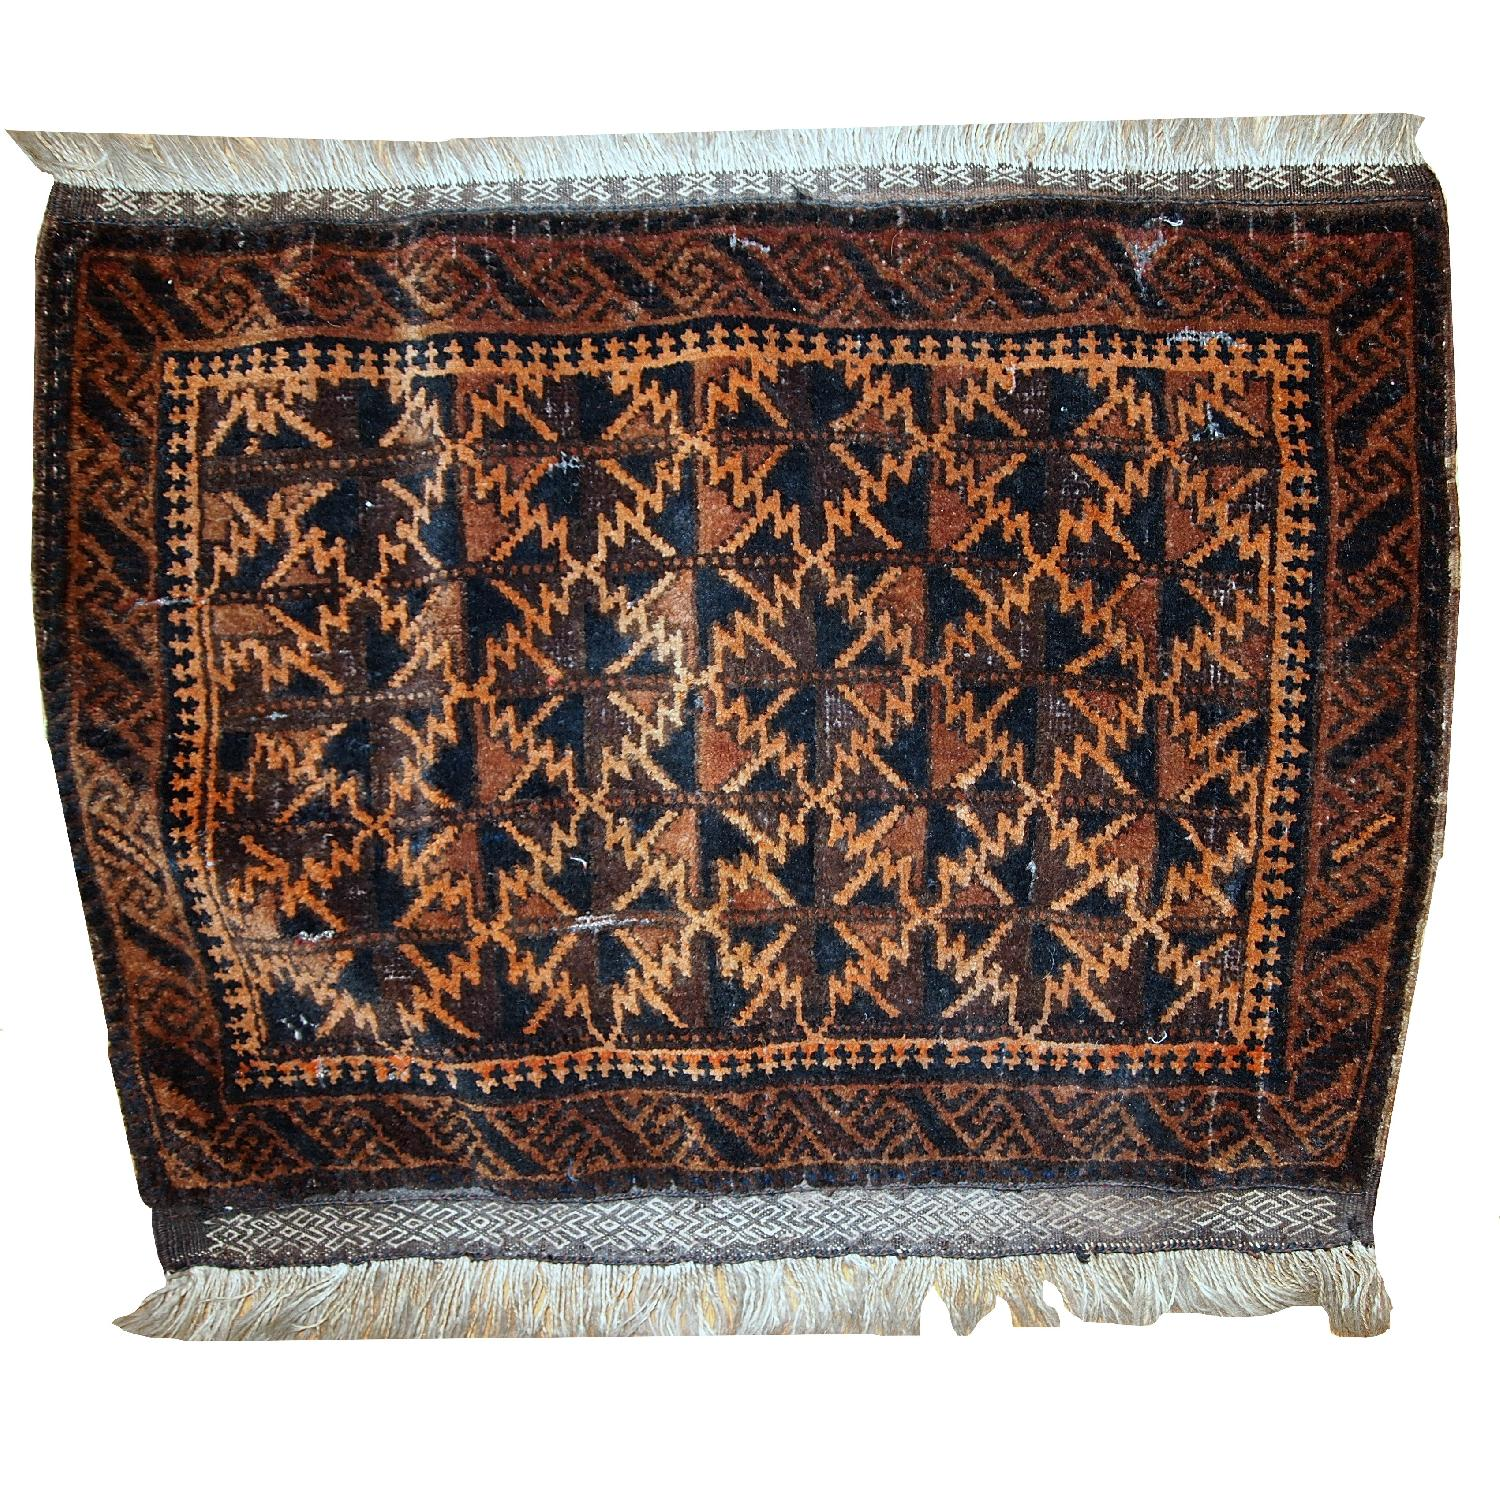 Antique Handmade Collectible Afghan Baluch Bag Face Rug